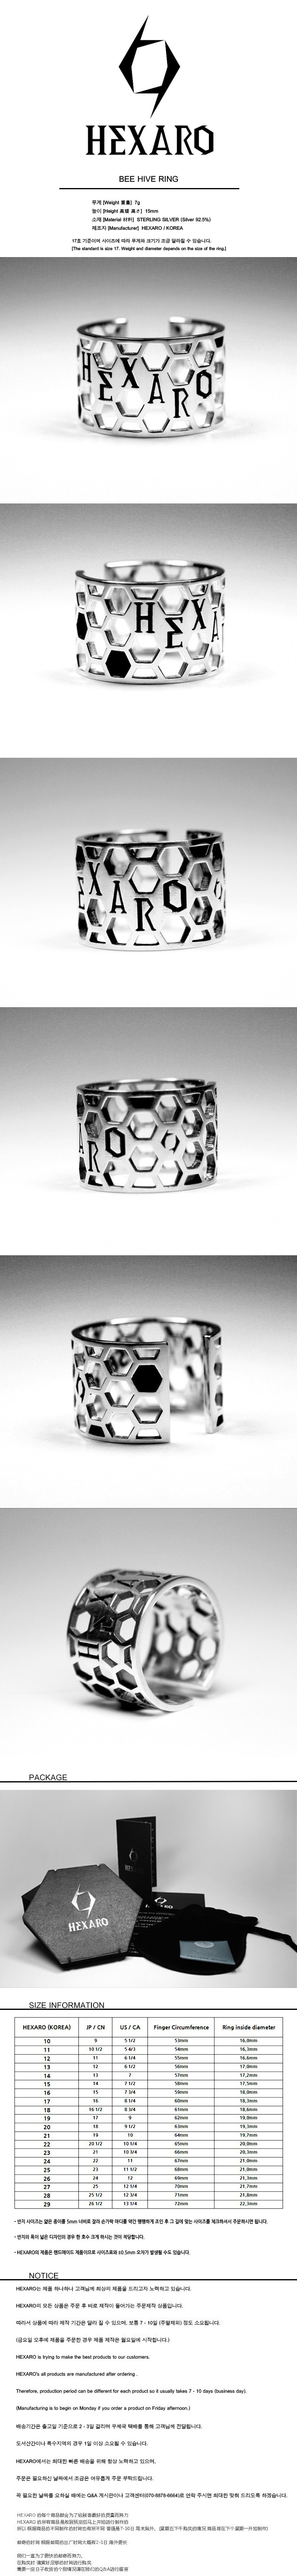 [HEXARO] BEE HIVE RING